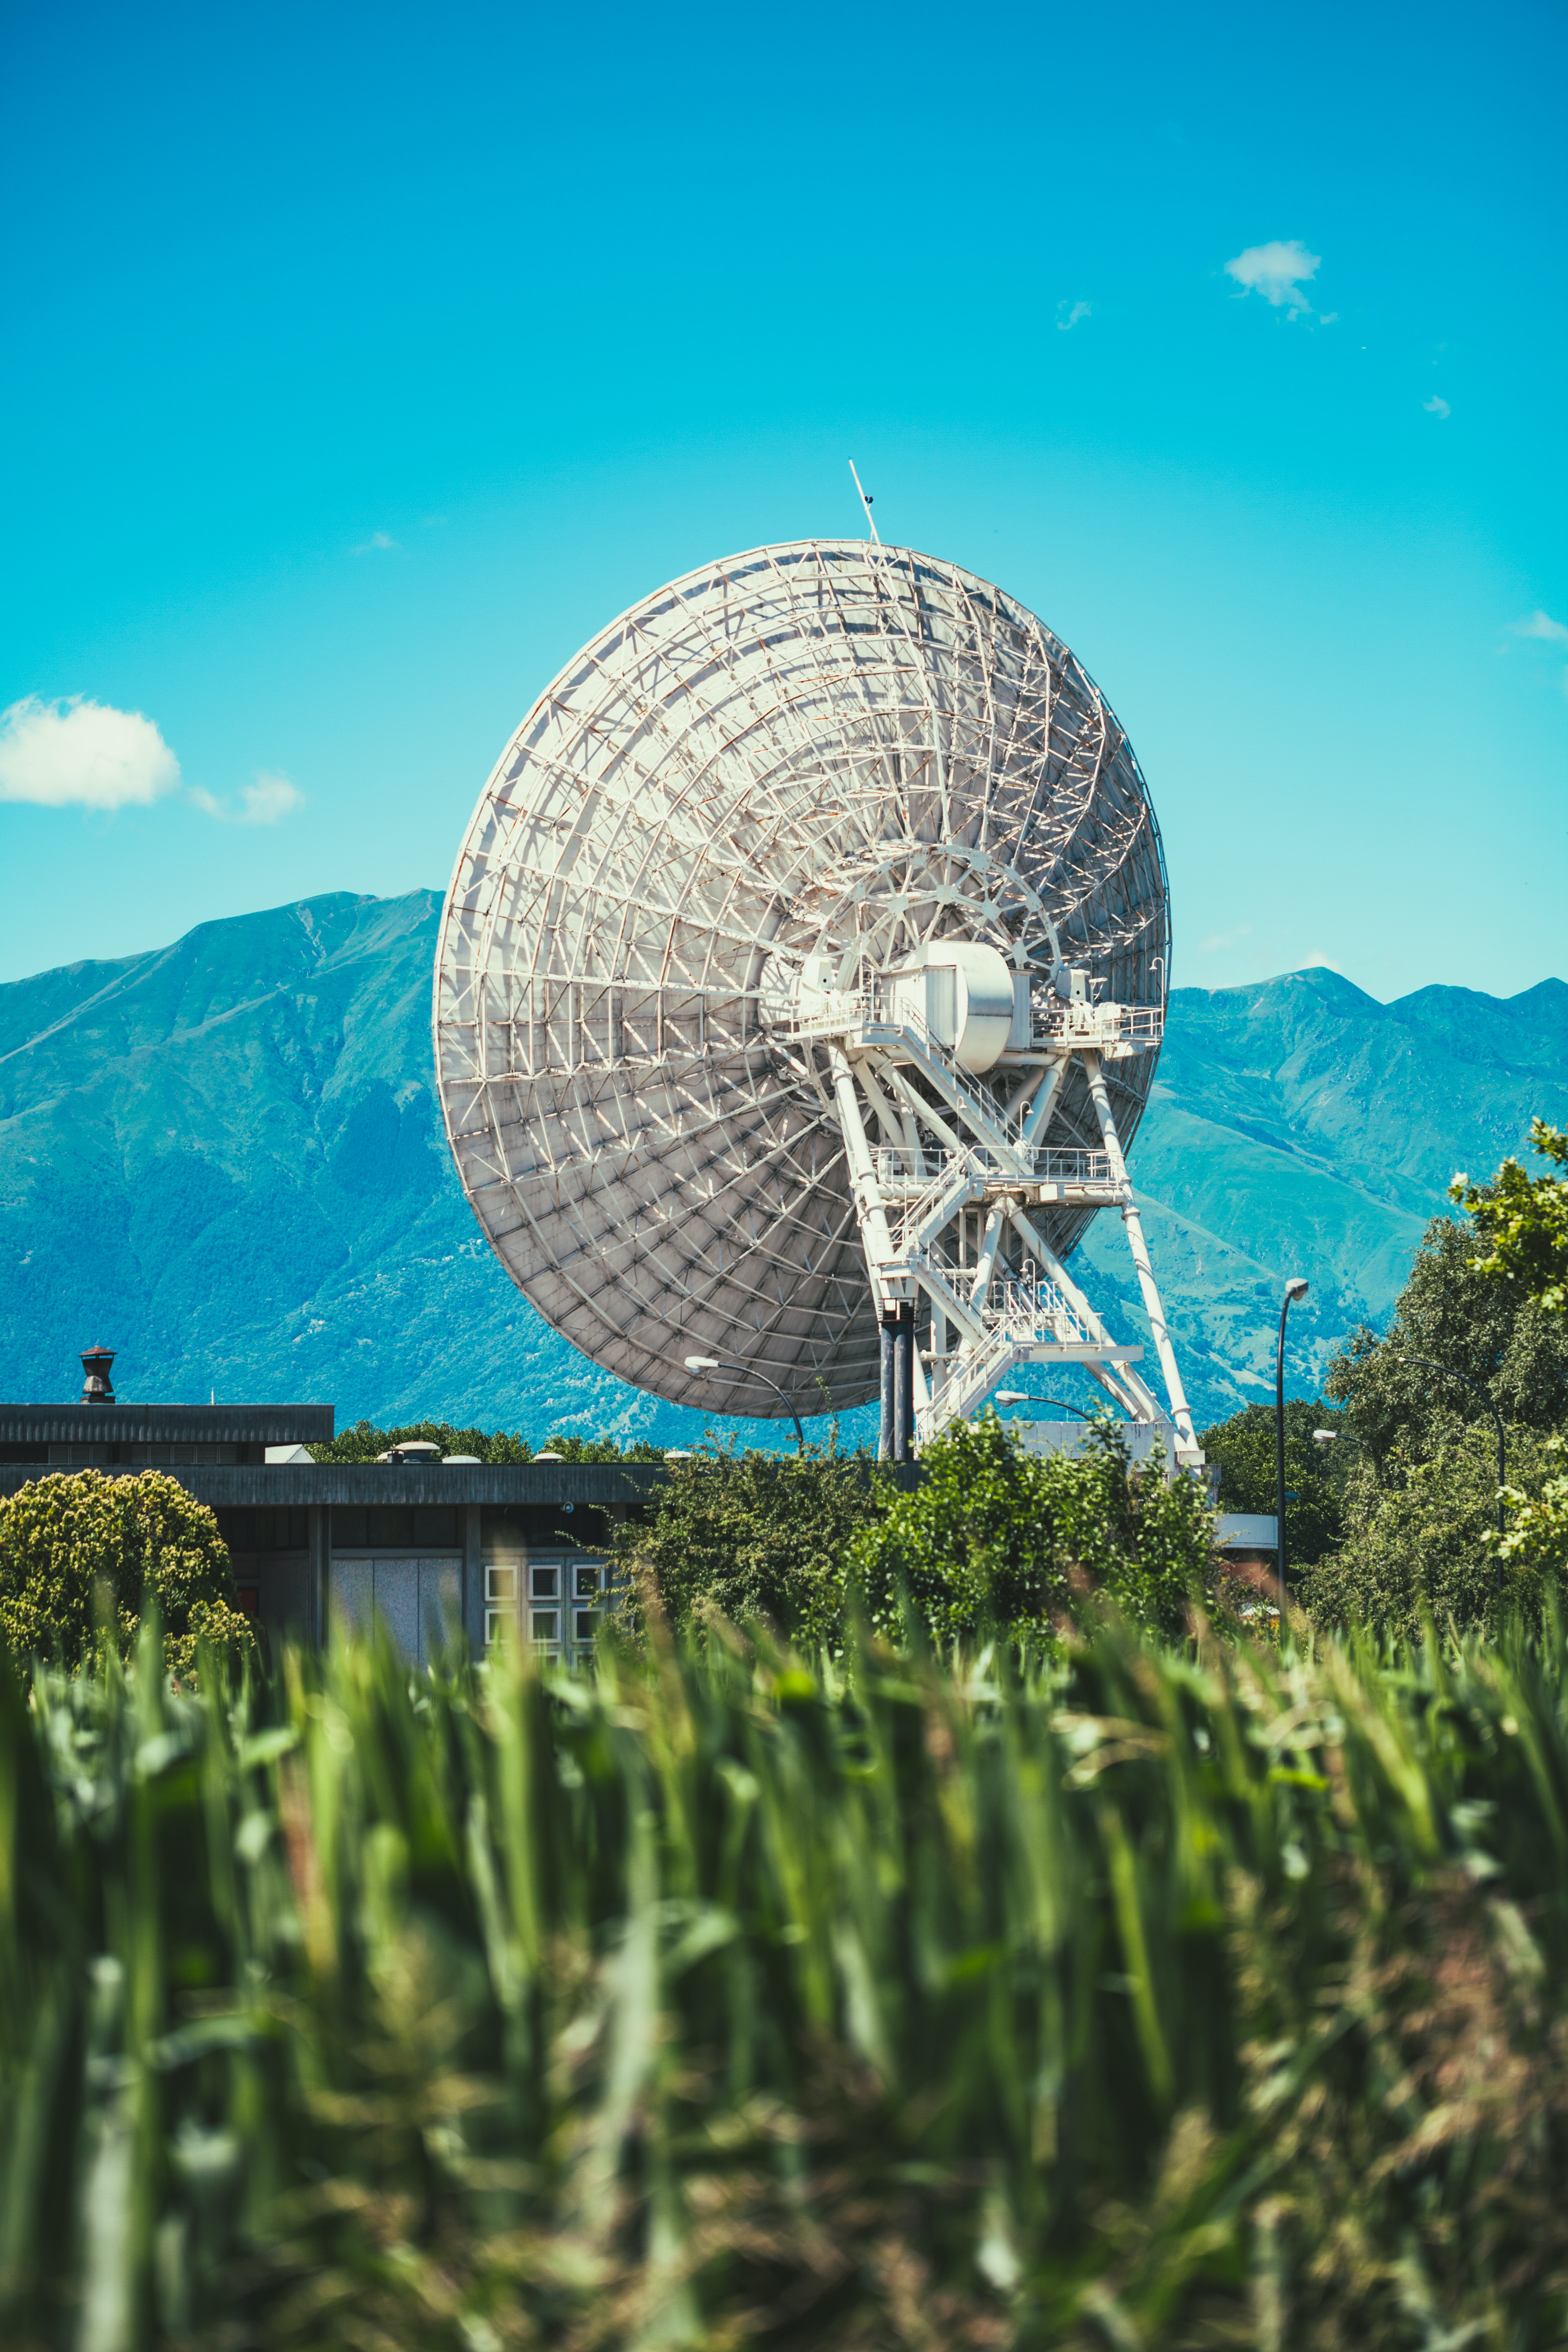 Communication satellite in a grassy field near the mountains